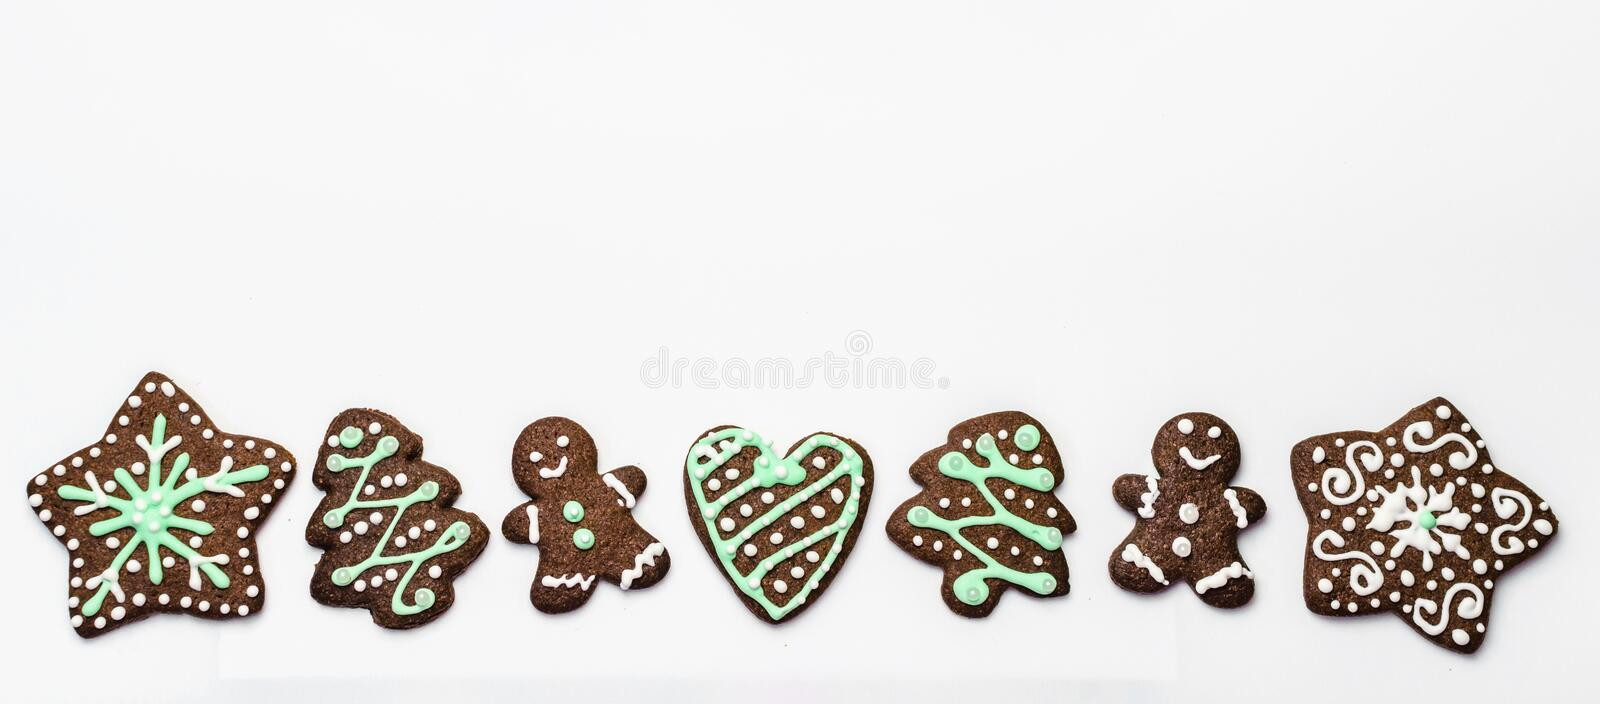 Gingerbread cookies on white background. Snowflake, star, man, heart shapes. Top view Christmas background royalty free stock photography